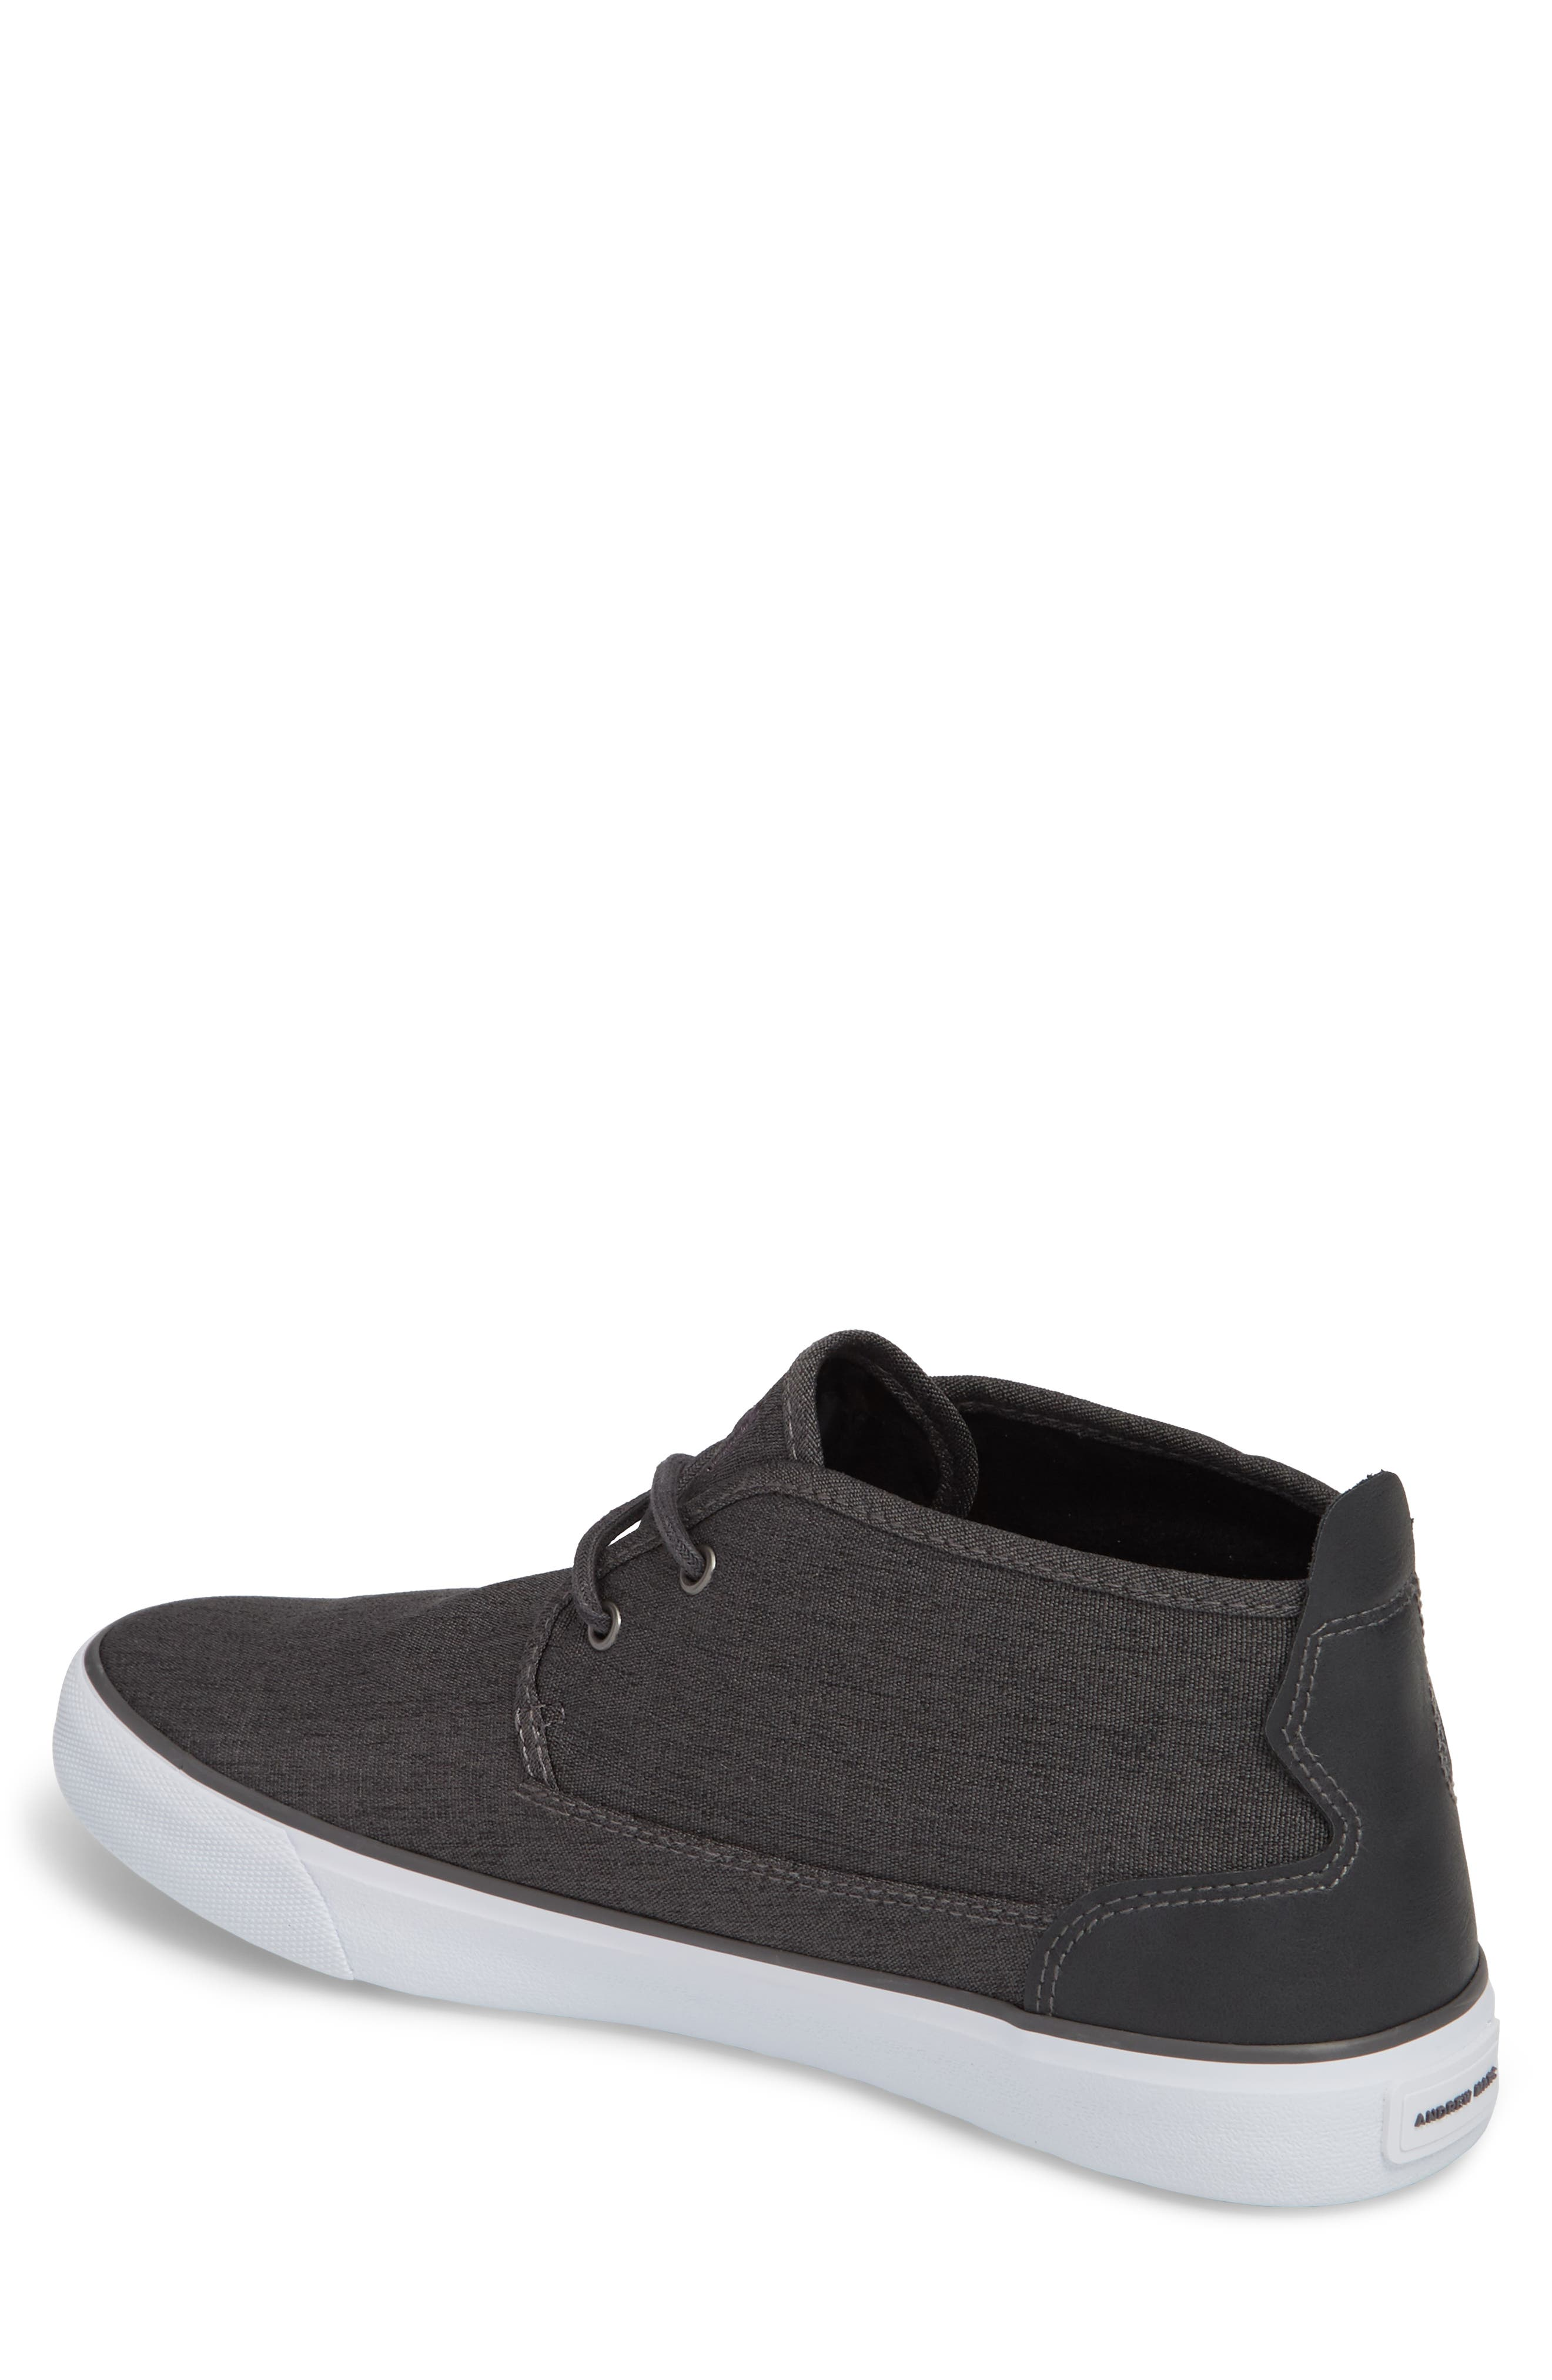 Reade Chukka Sneaker,                             Alternate thumbnail 2, color,                             027